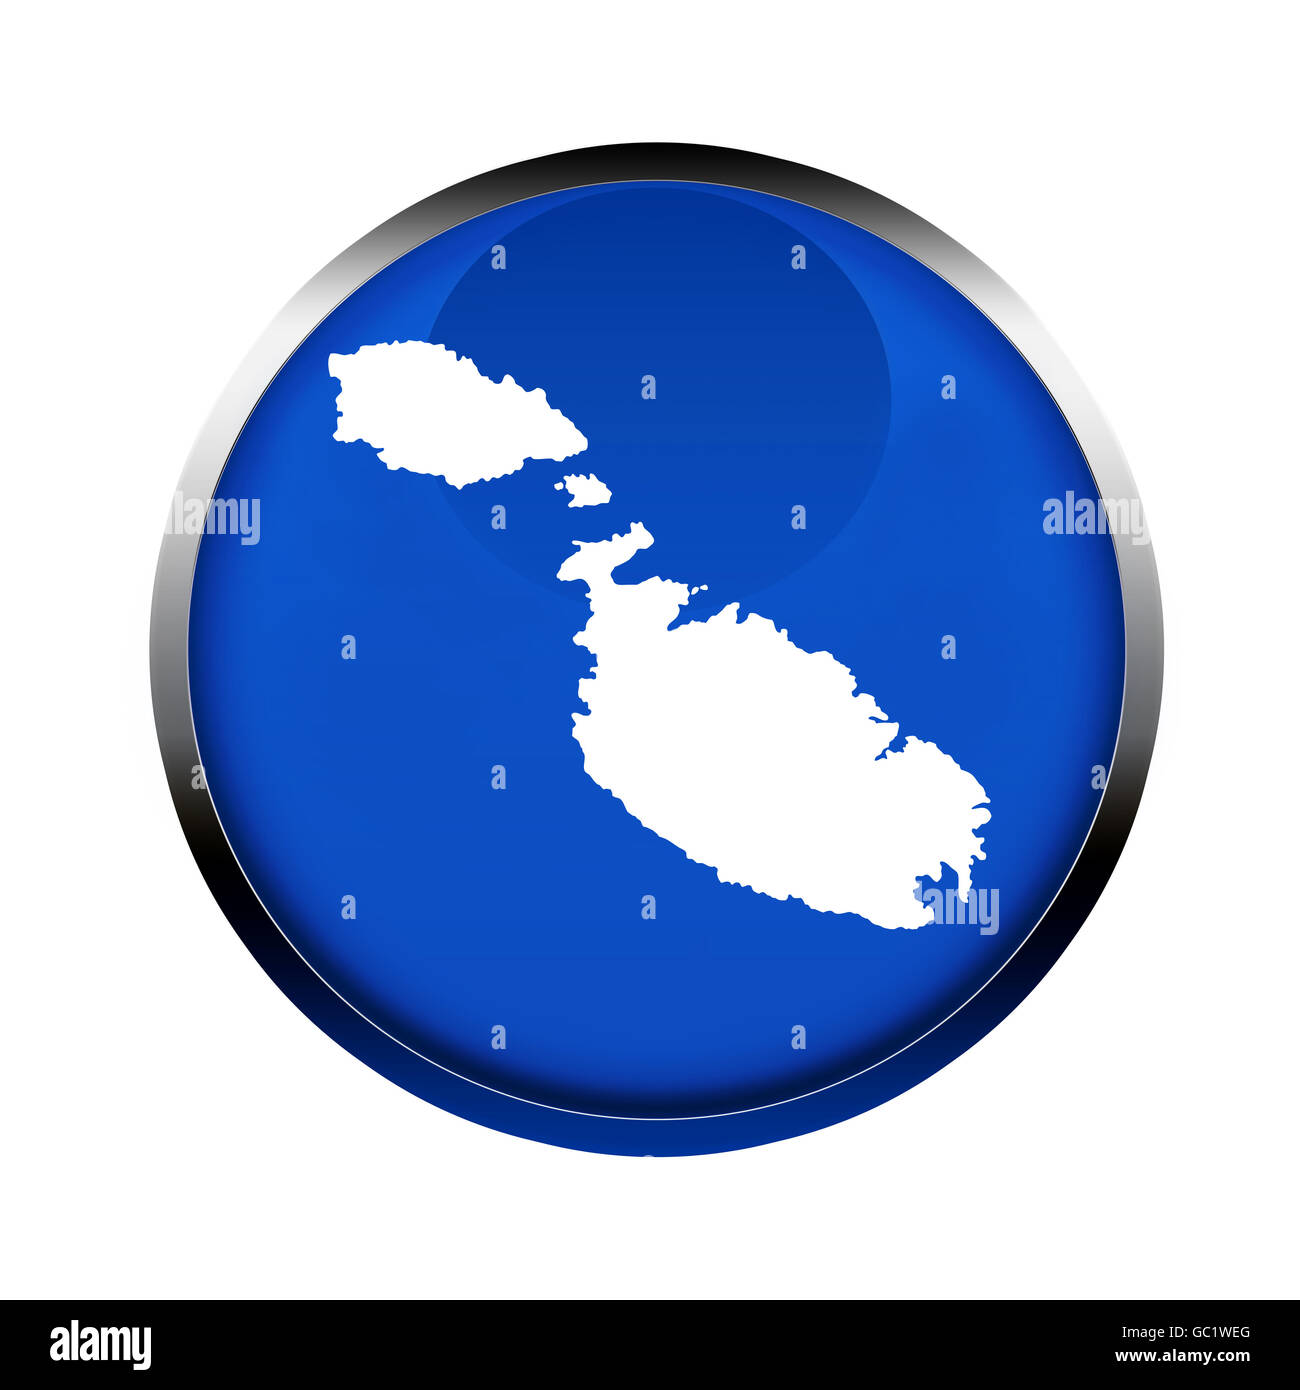 Malta map button in the colors of the European Union. - Stock Image